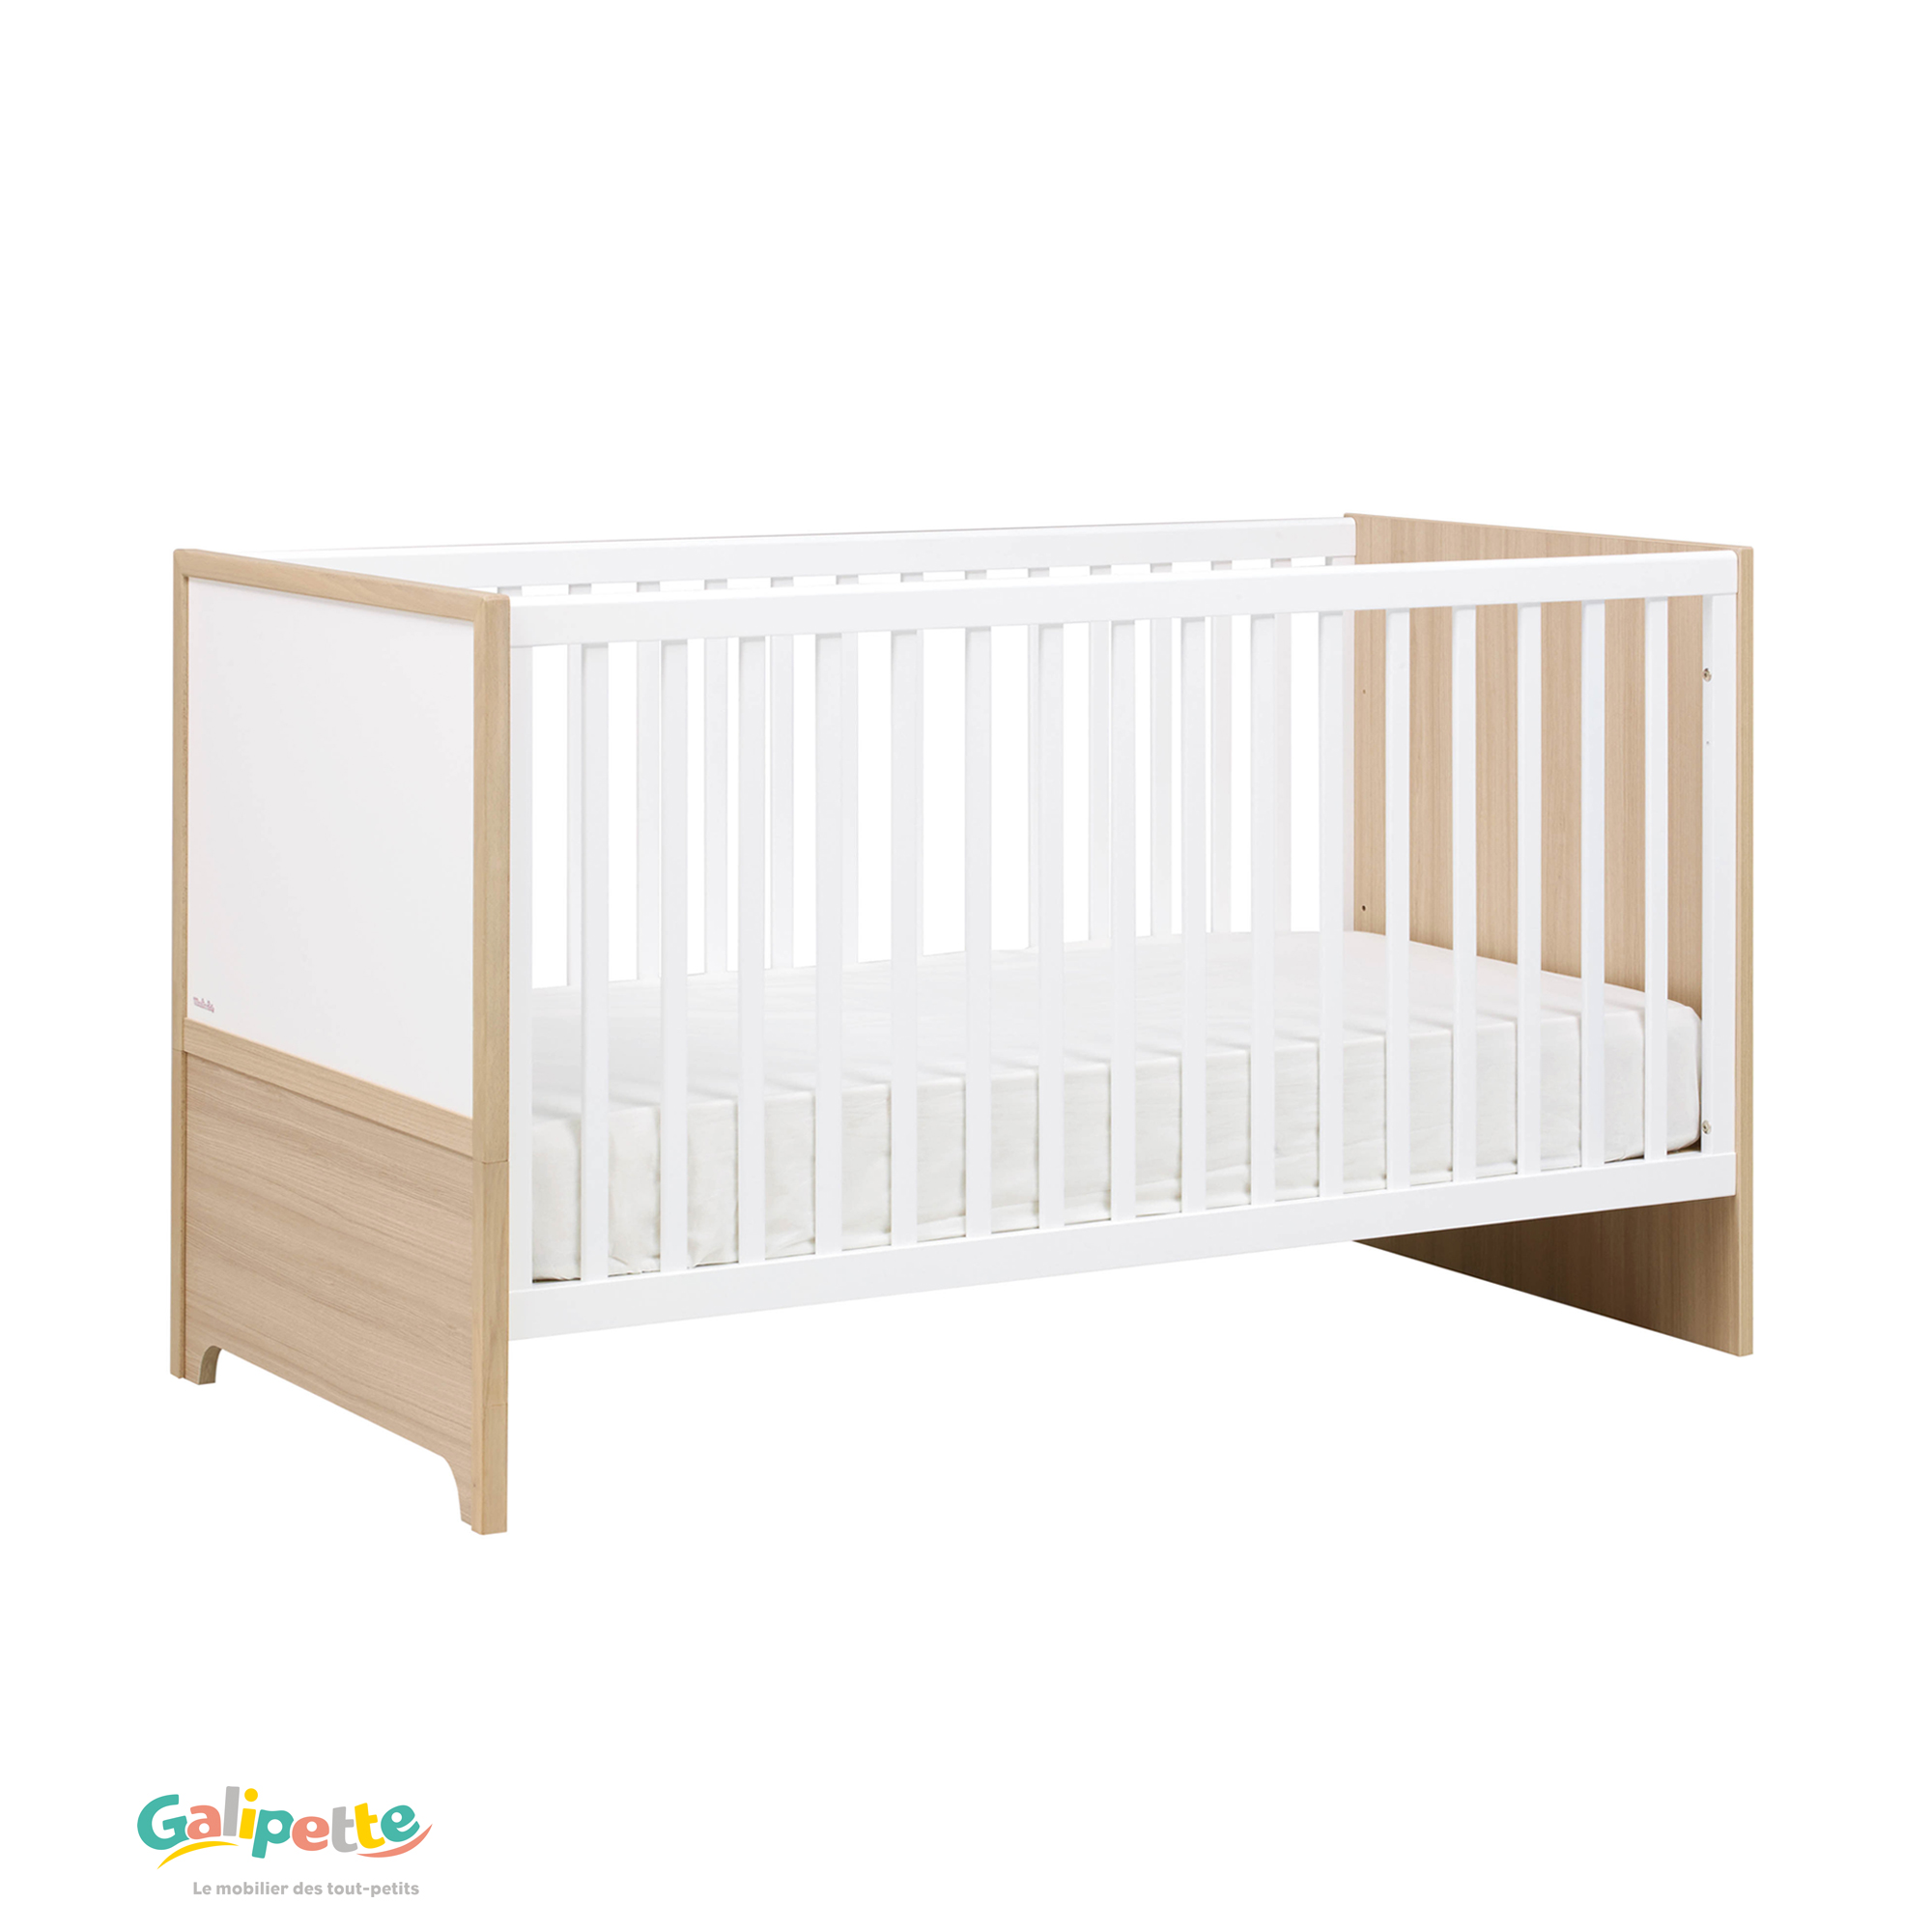 Baby Cot in Singapore